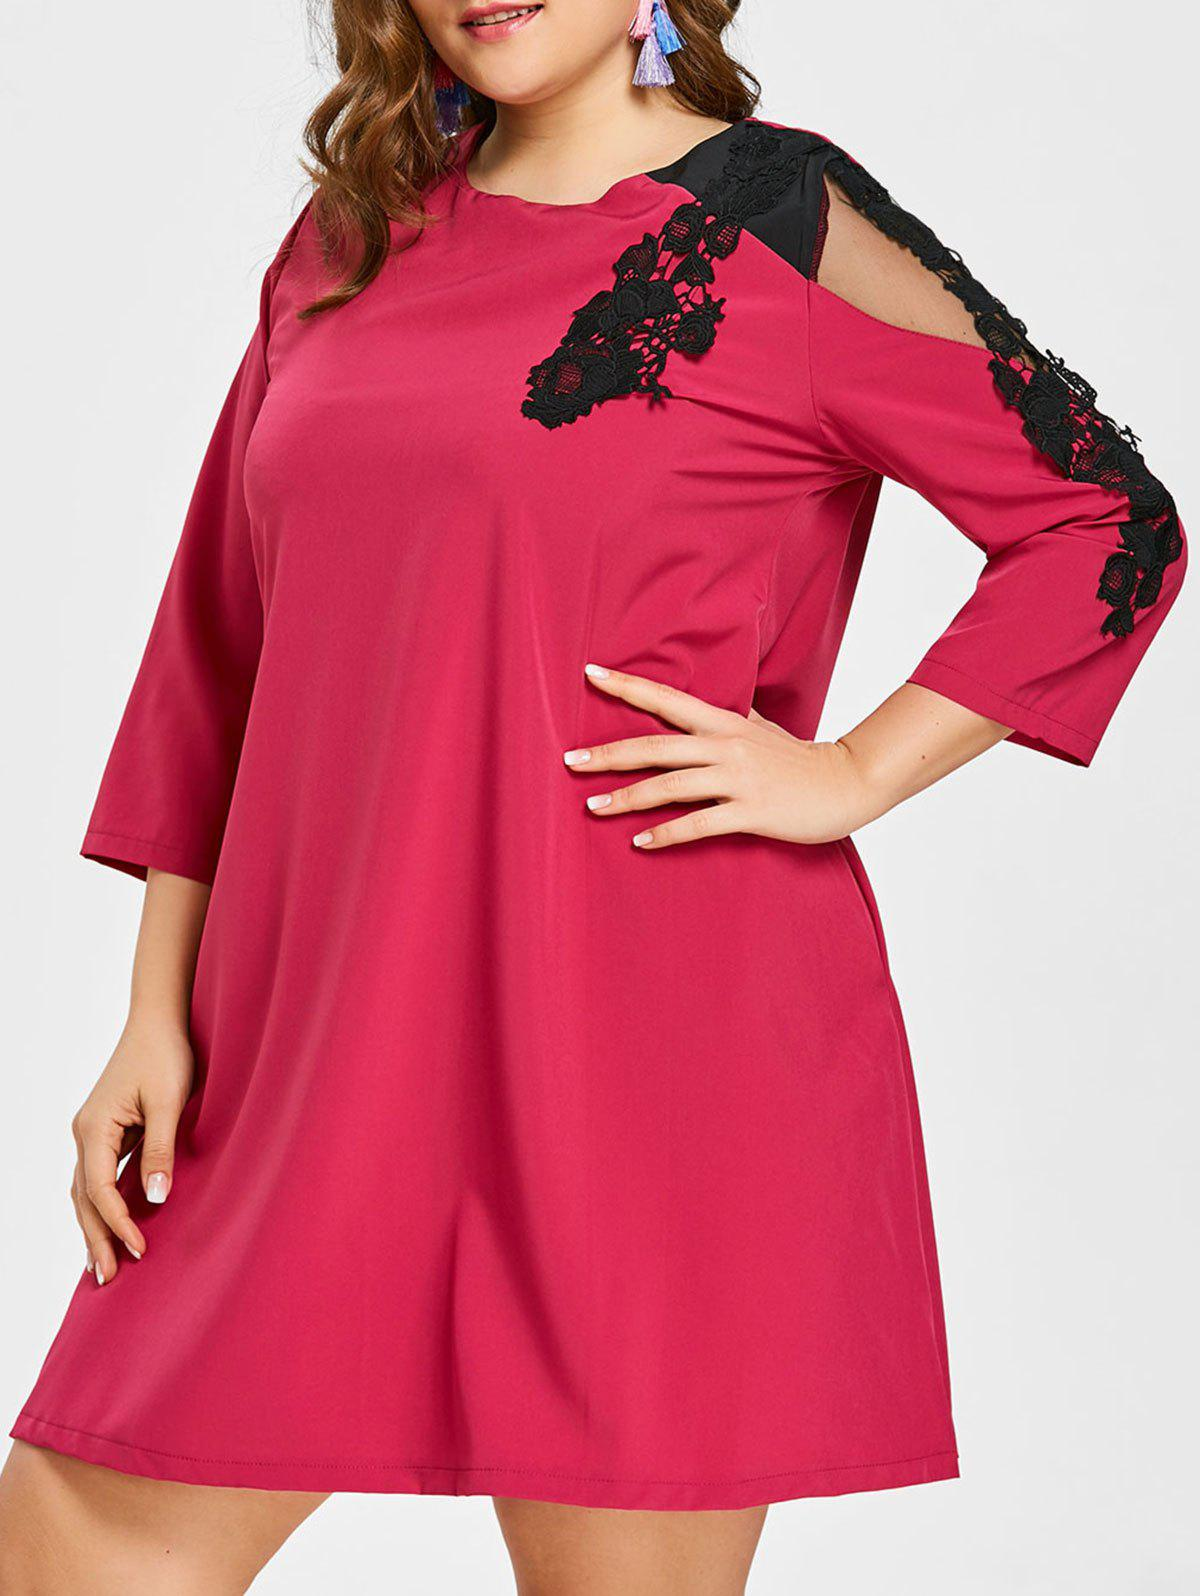 New Plus Size Lace Insert Swing Dress